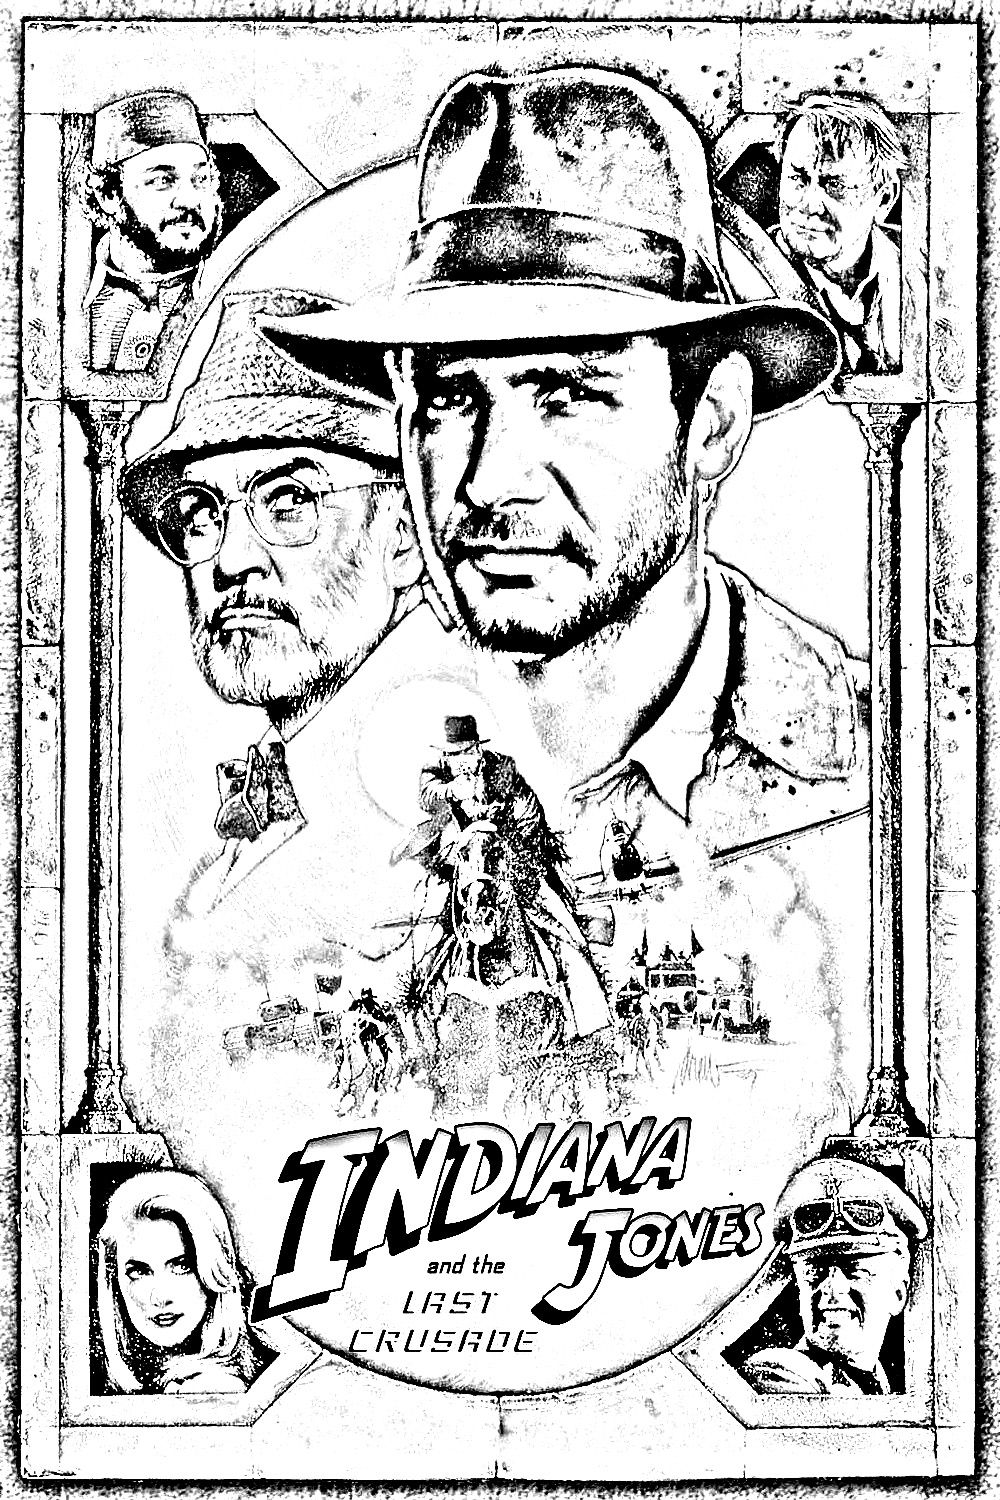 Indiana Jones And The Last Crusade Movie Poster From The Gallery Movie Posters Indiana Jones Birthday Party Indiana Jones Party Indiana Jones